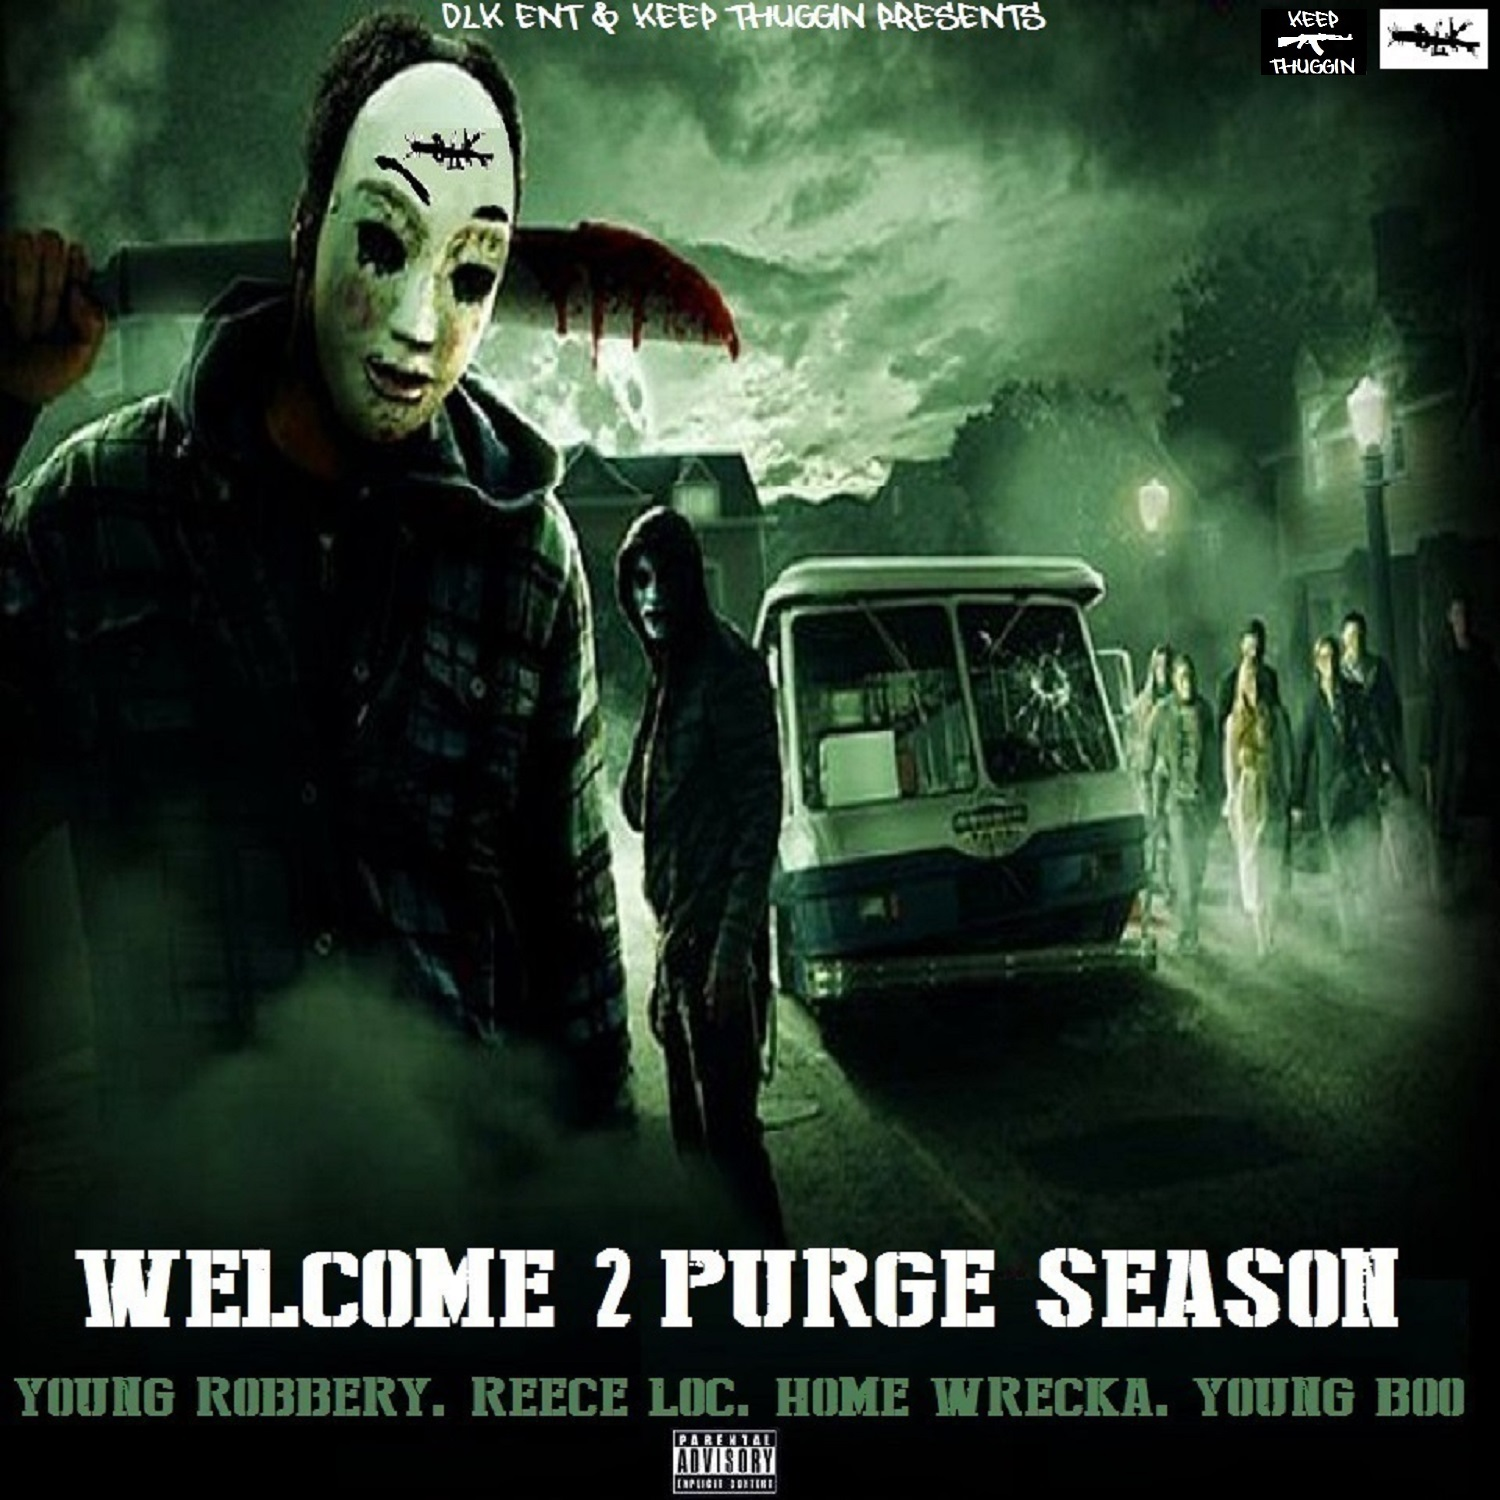 welcome 2 purge season